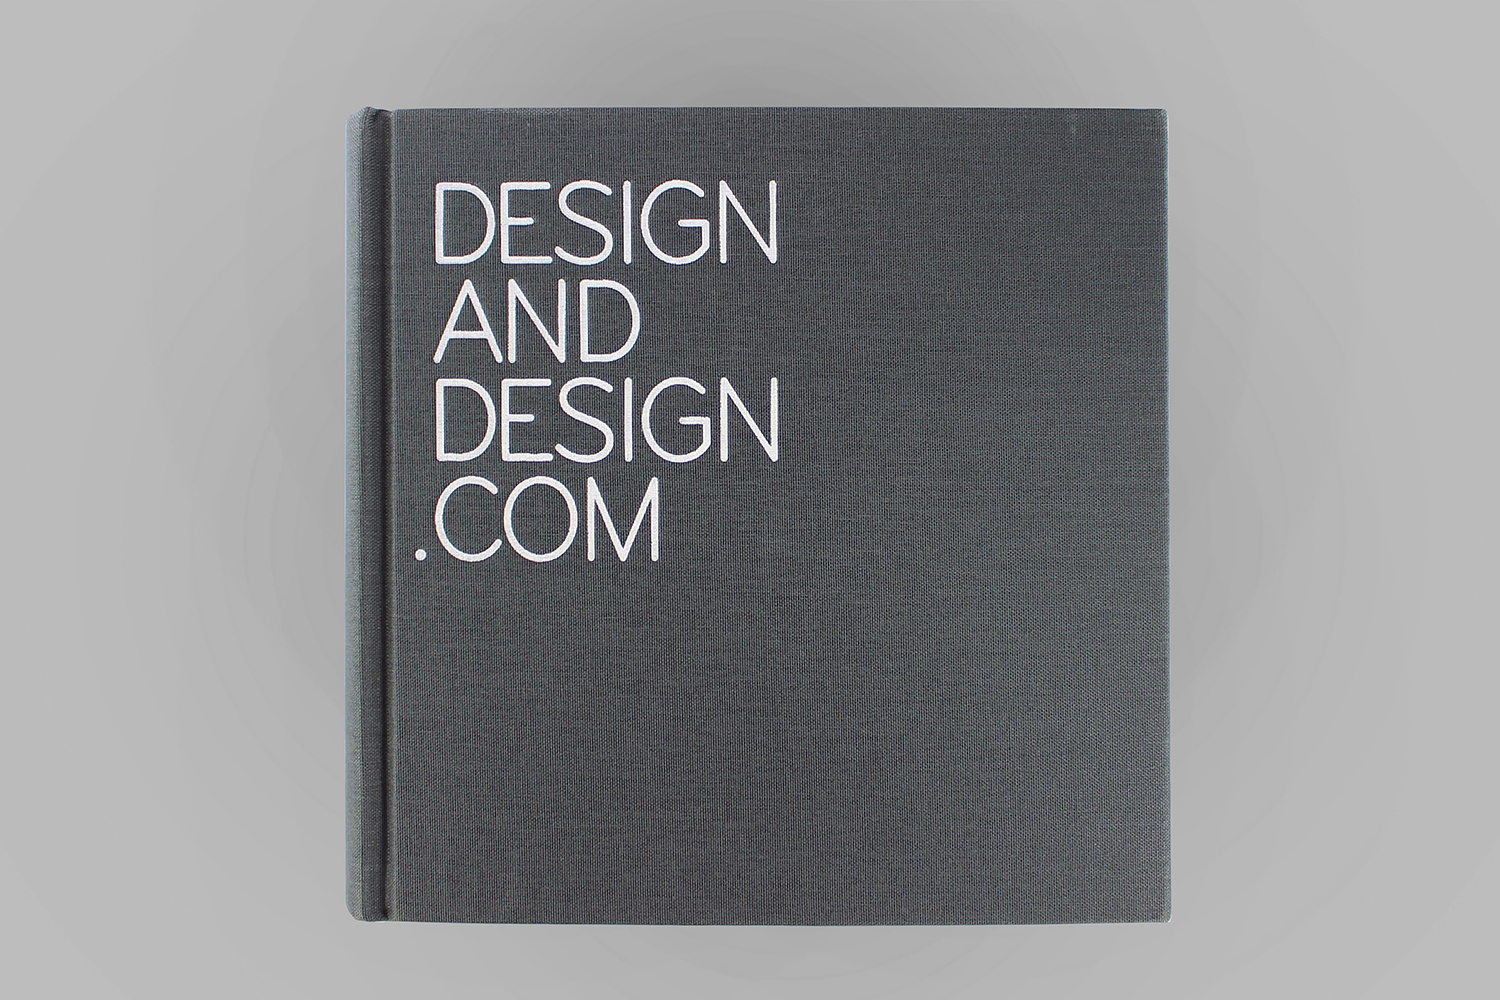 Design And Design Book Of The Year  | Author: Marc Praquin | Publisher: Index Books | Paris | 2008